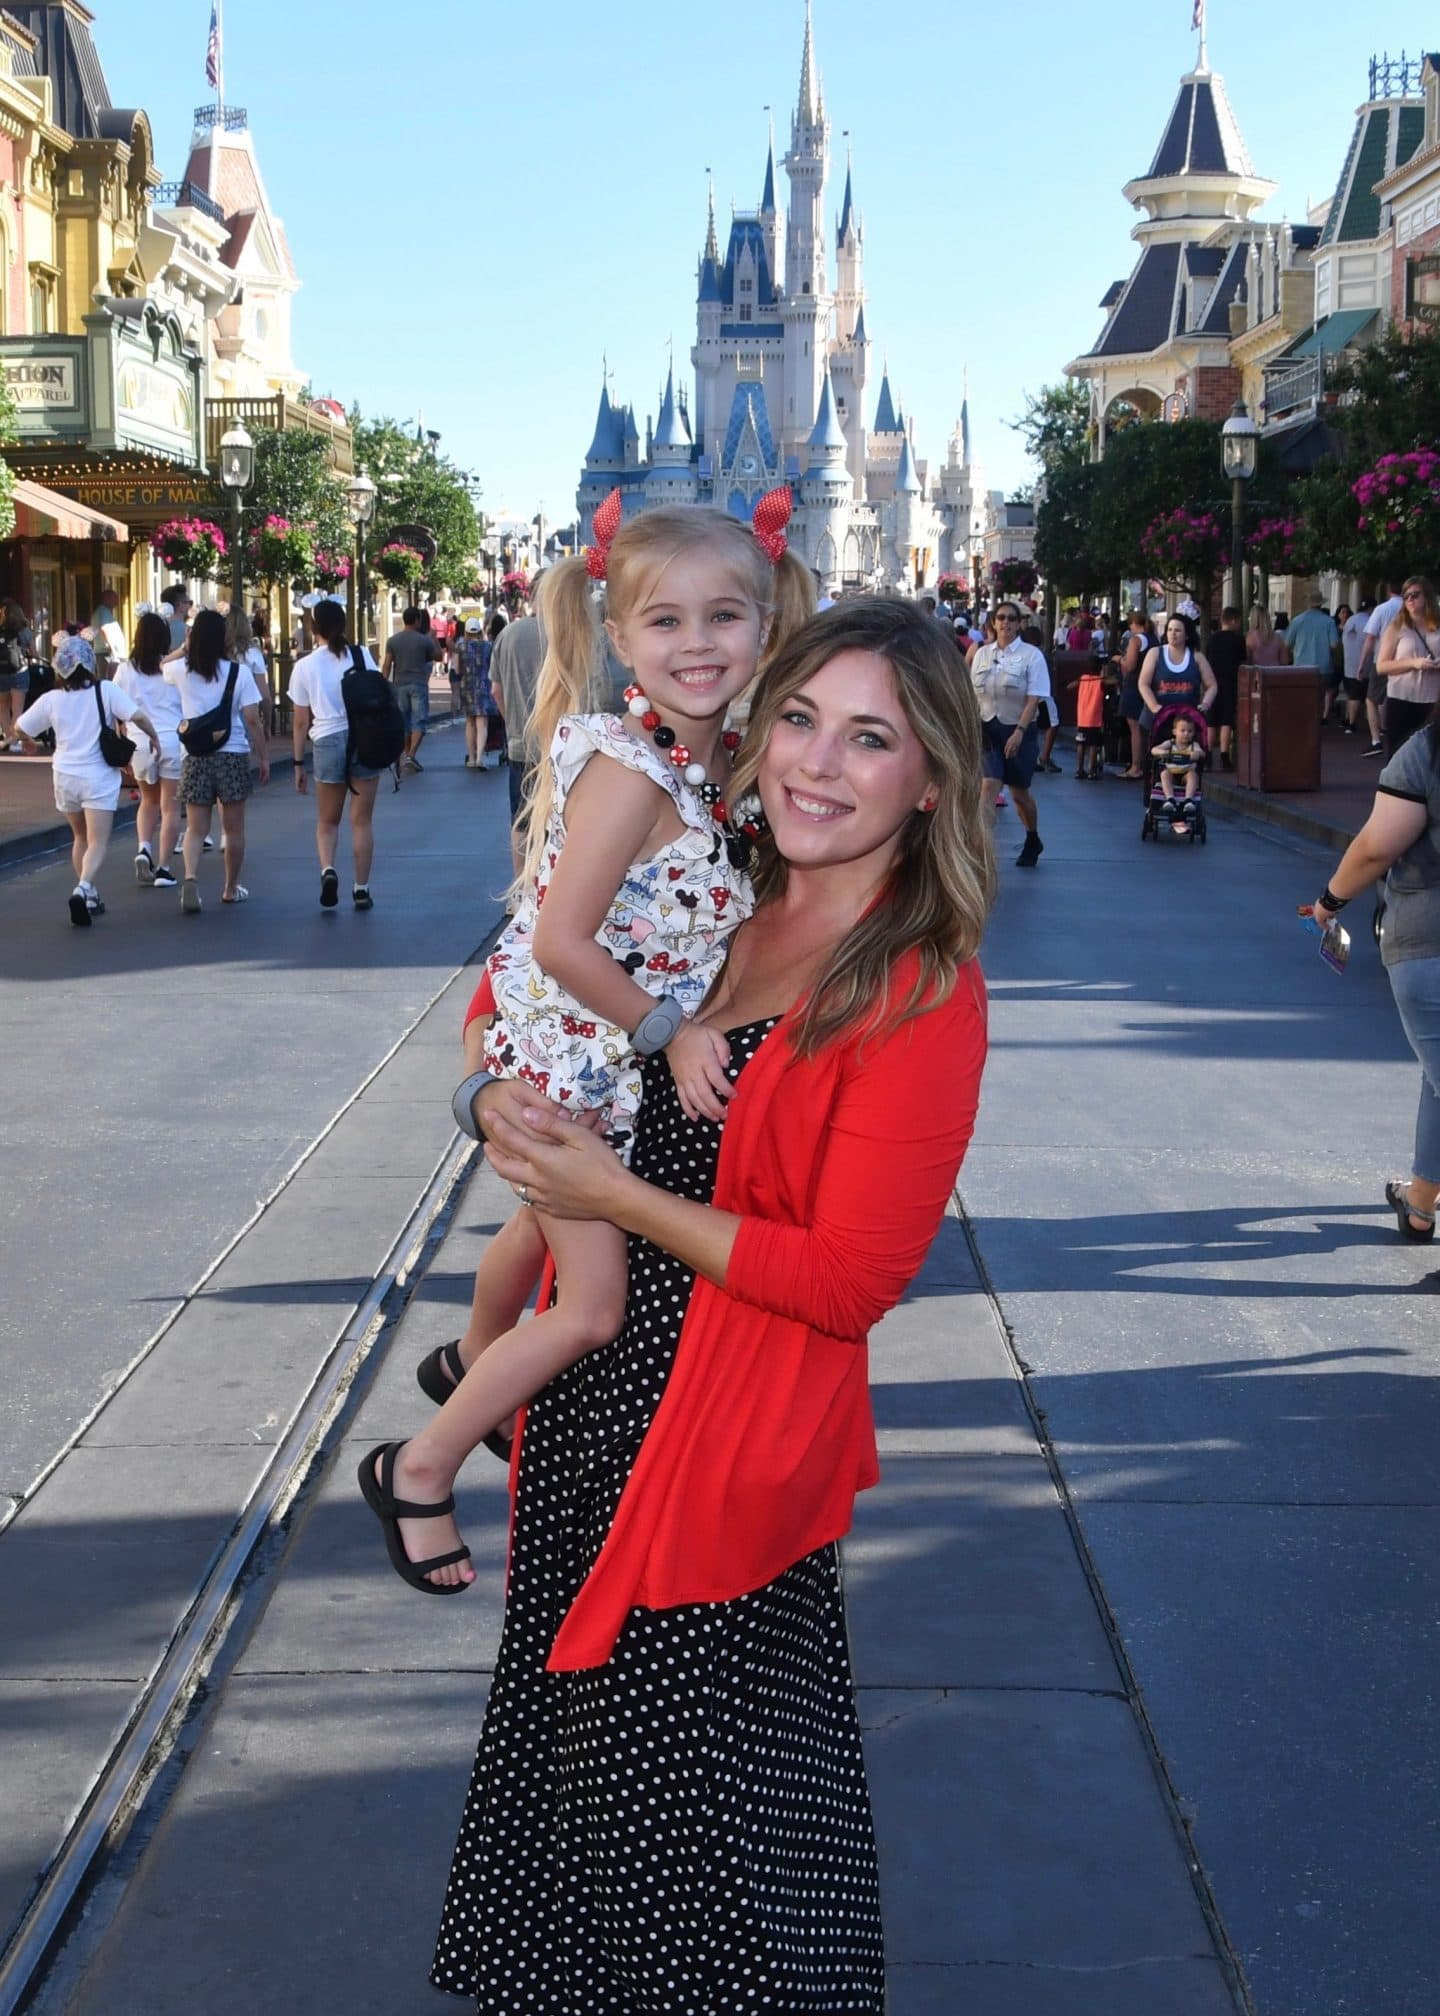 magic kingdom cinderella's castle mother and daughter photos